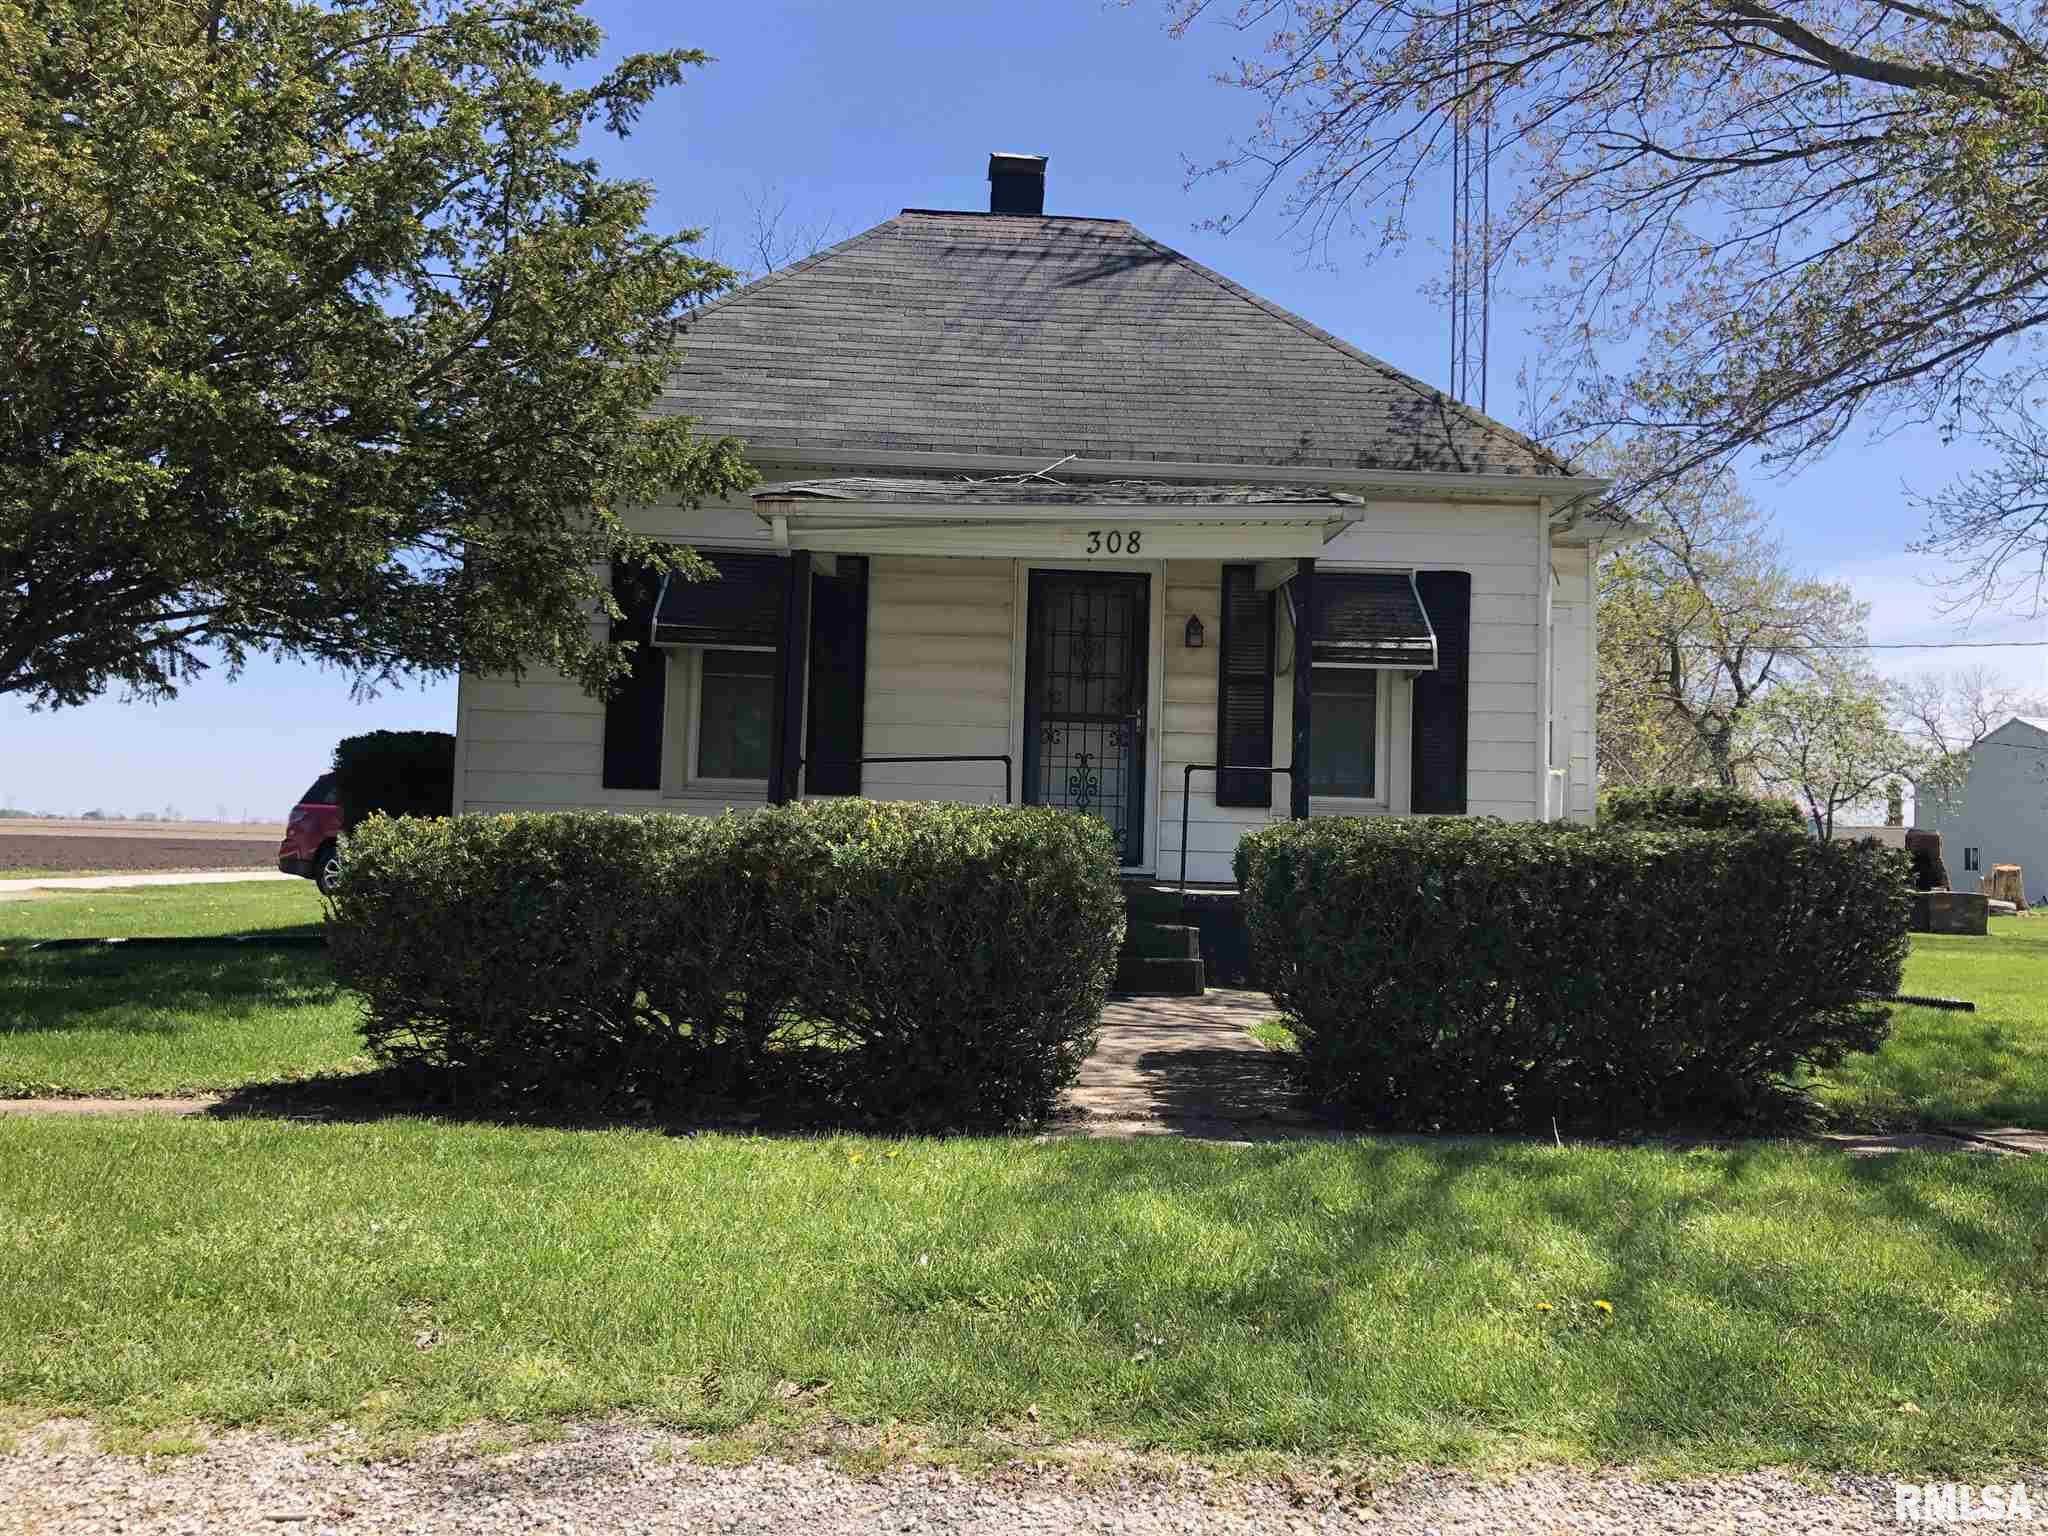 308 CROSS Property Photo - Loami, IL real estate listing